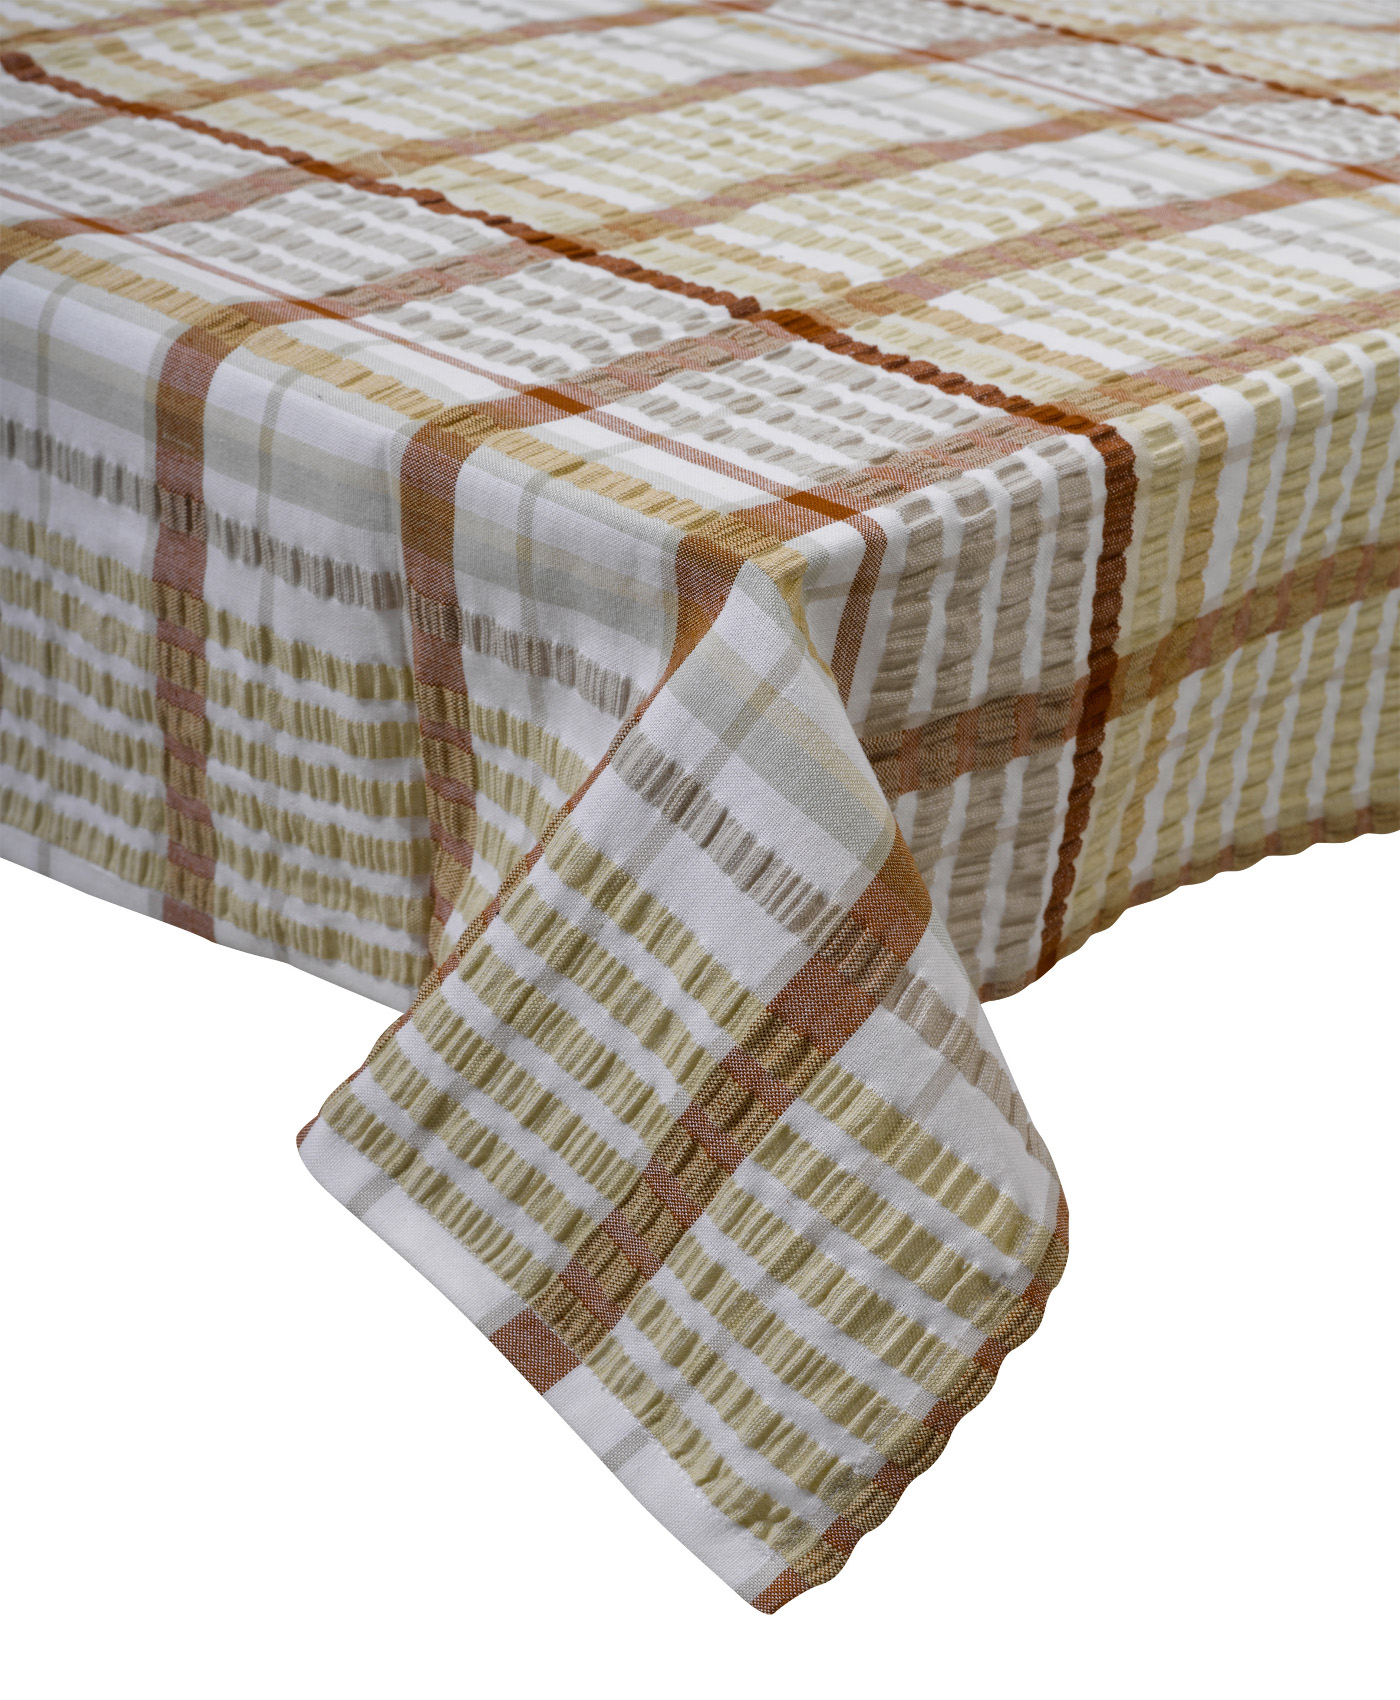 oatmeal bright seersucker checked tablecloth dining linen itm cotton room cloth table cloths traditional